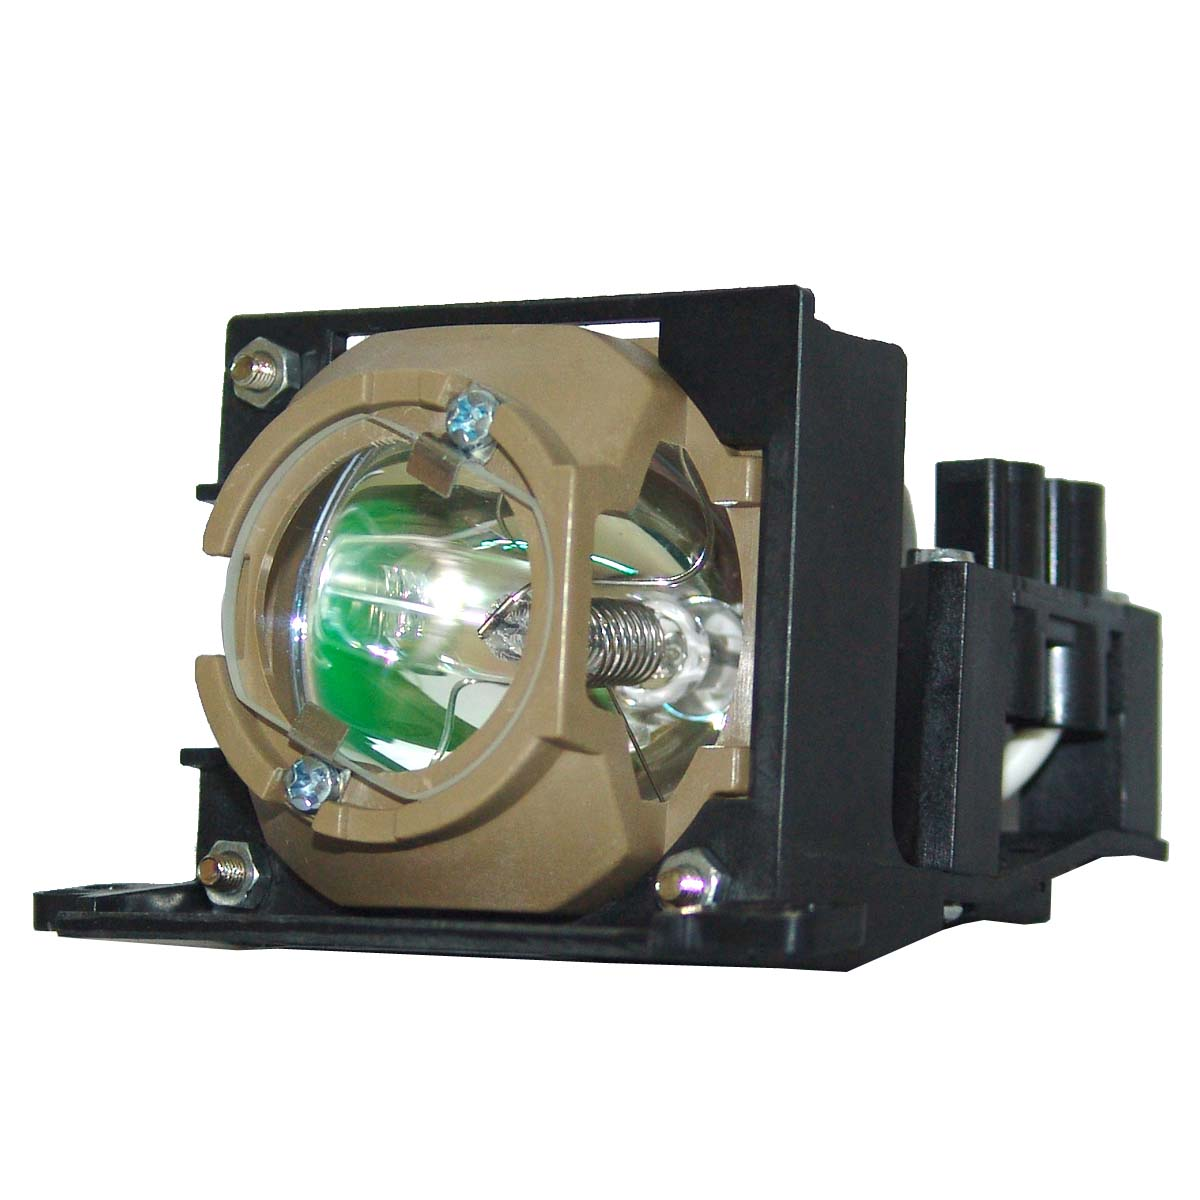 SP.83401.001 Optoma EP735 Projector Lamp